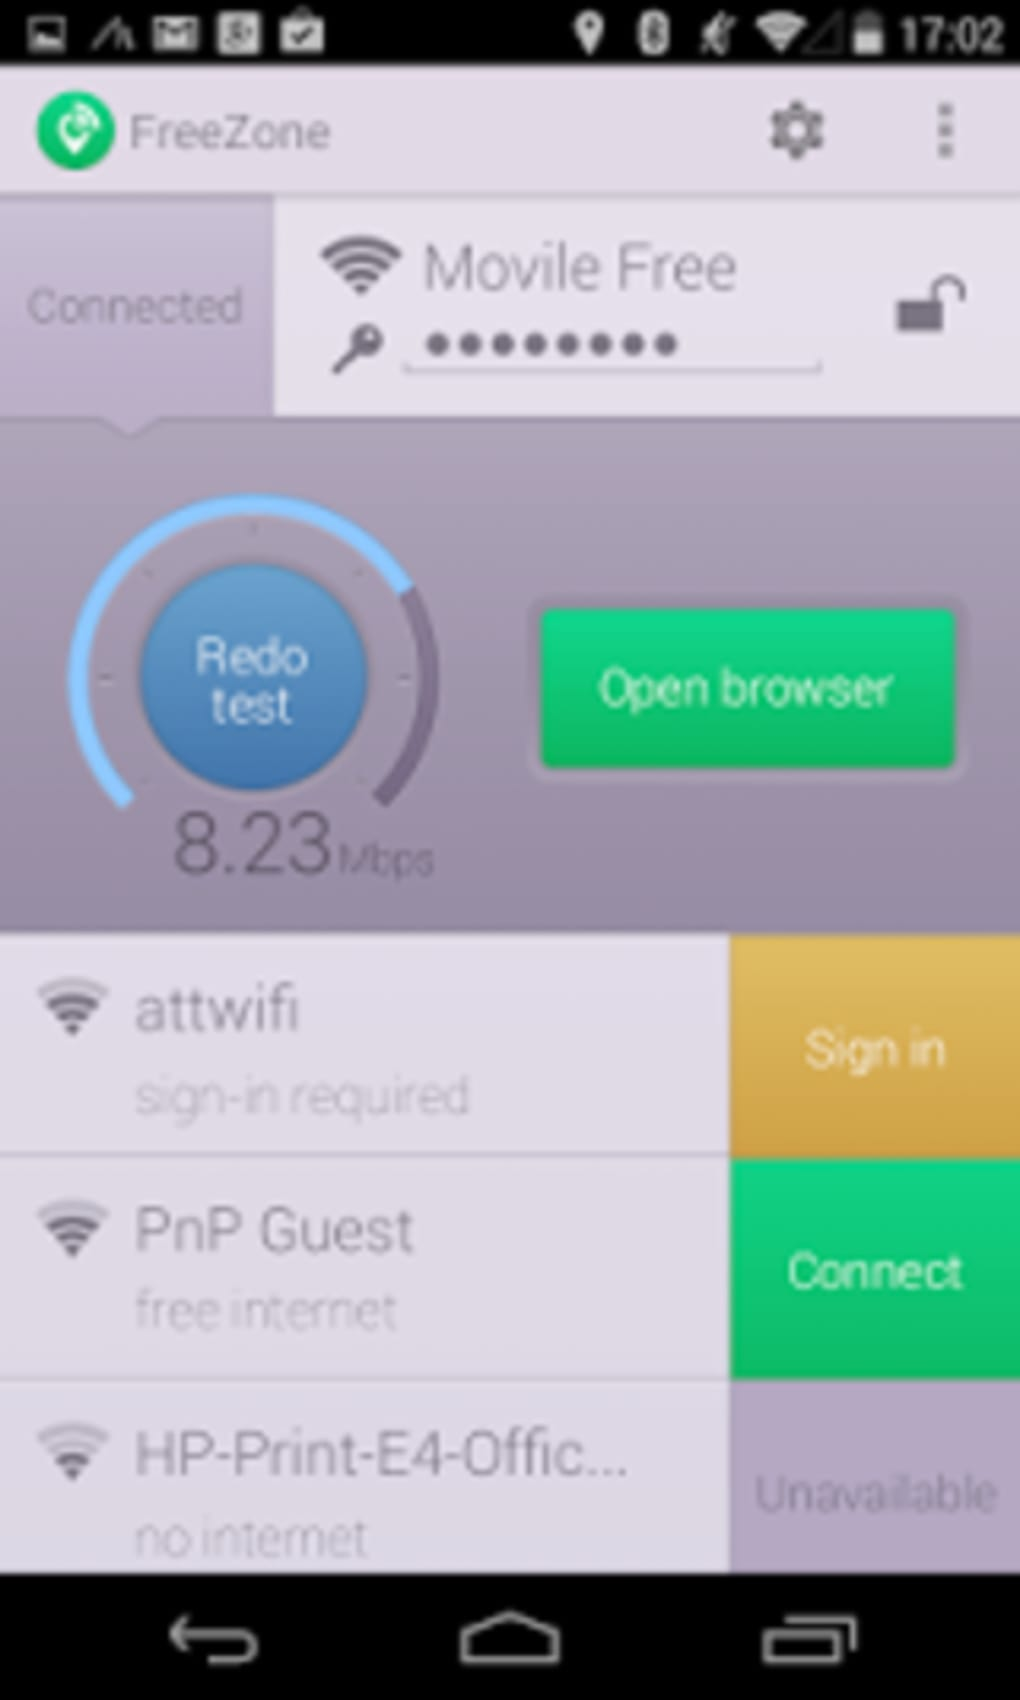 Free Zone Wi Fi For Android Download